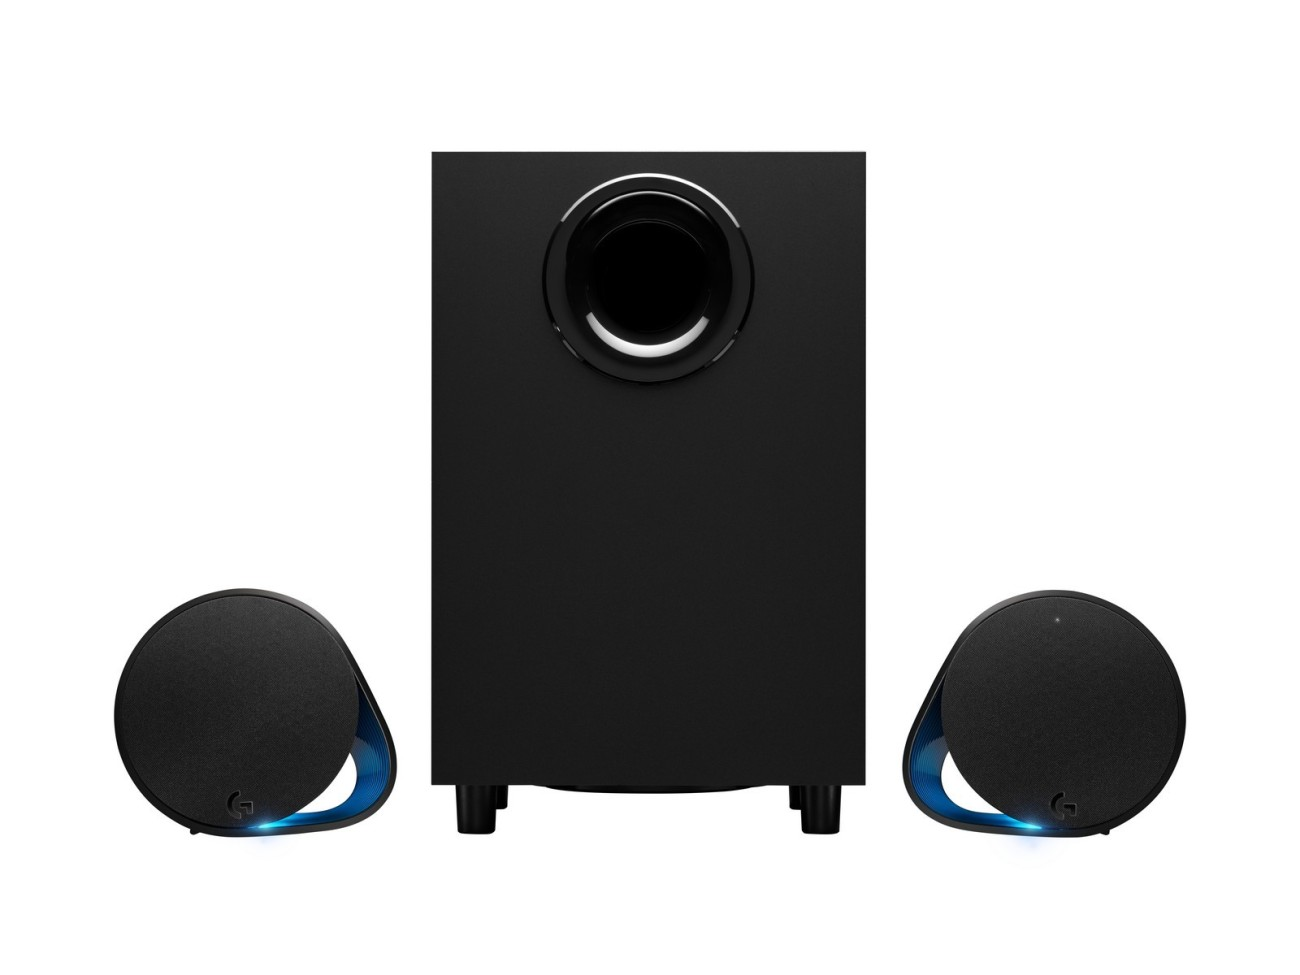 logitech-g560-speakers-3-1